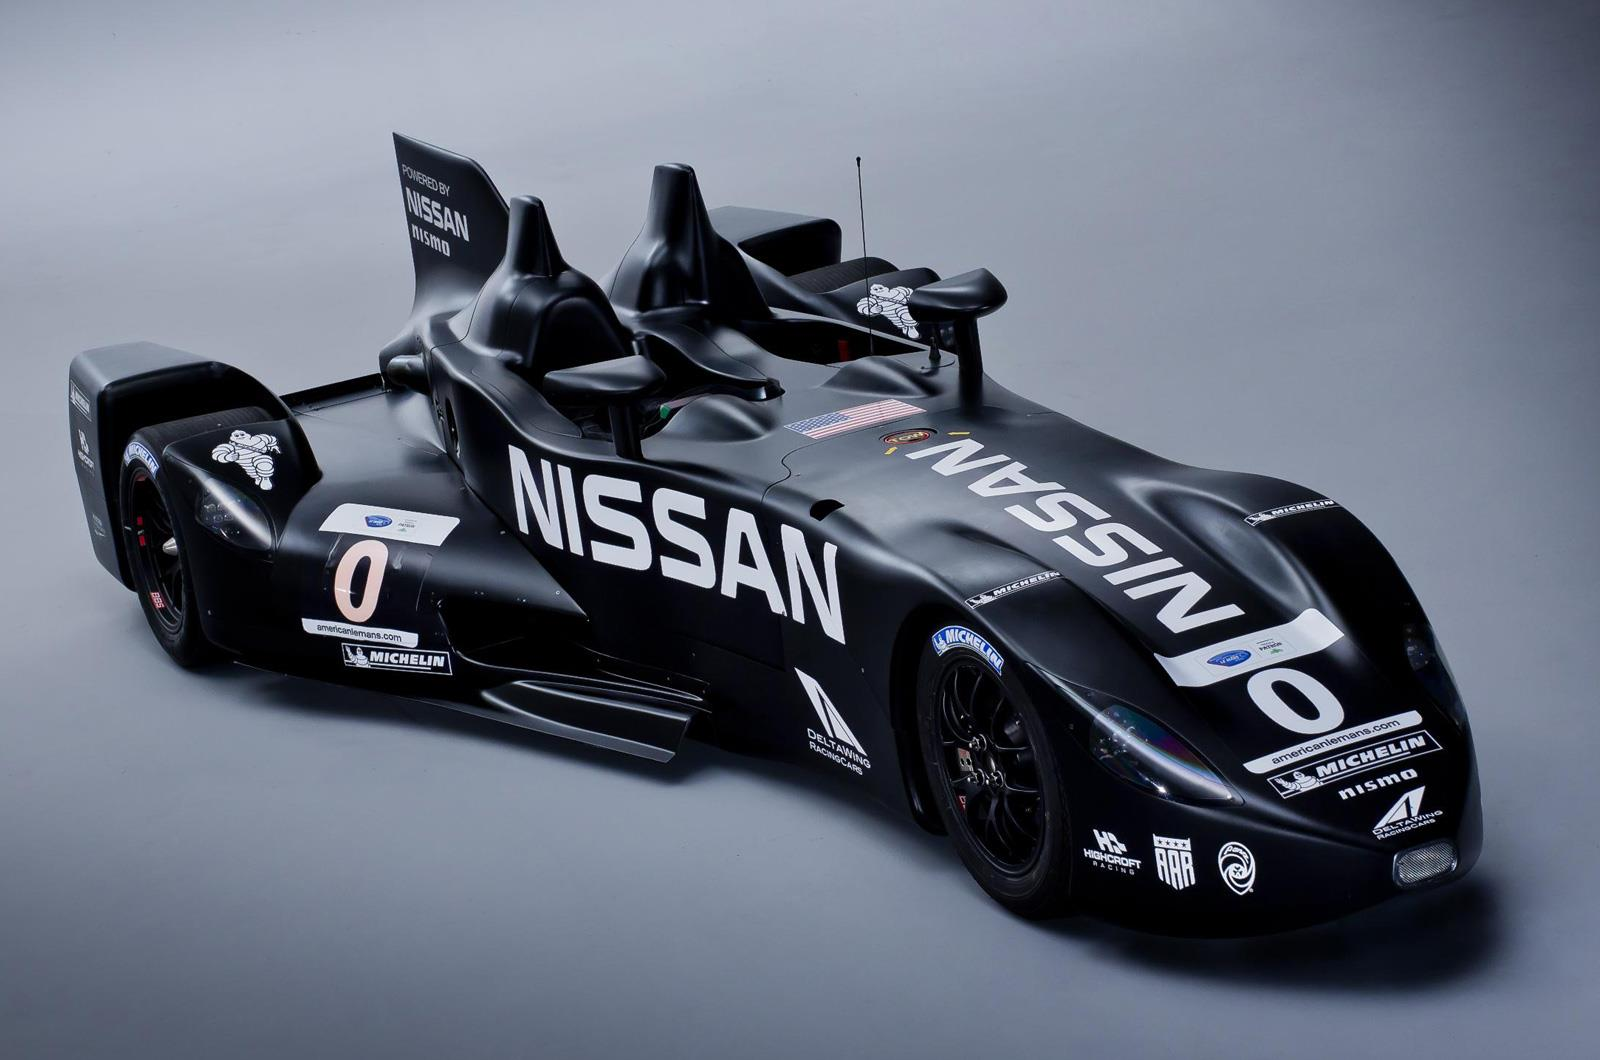 Nissan to make Le Mans comeback